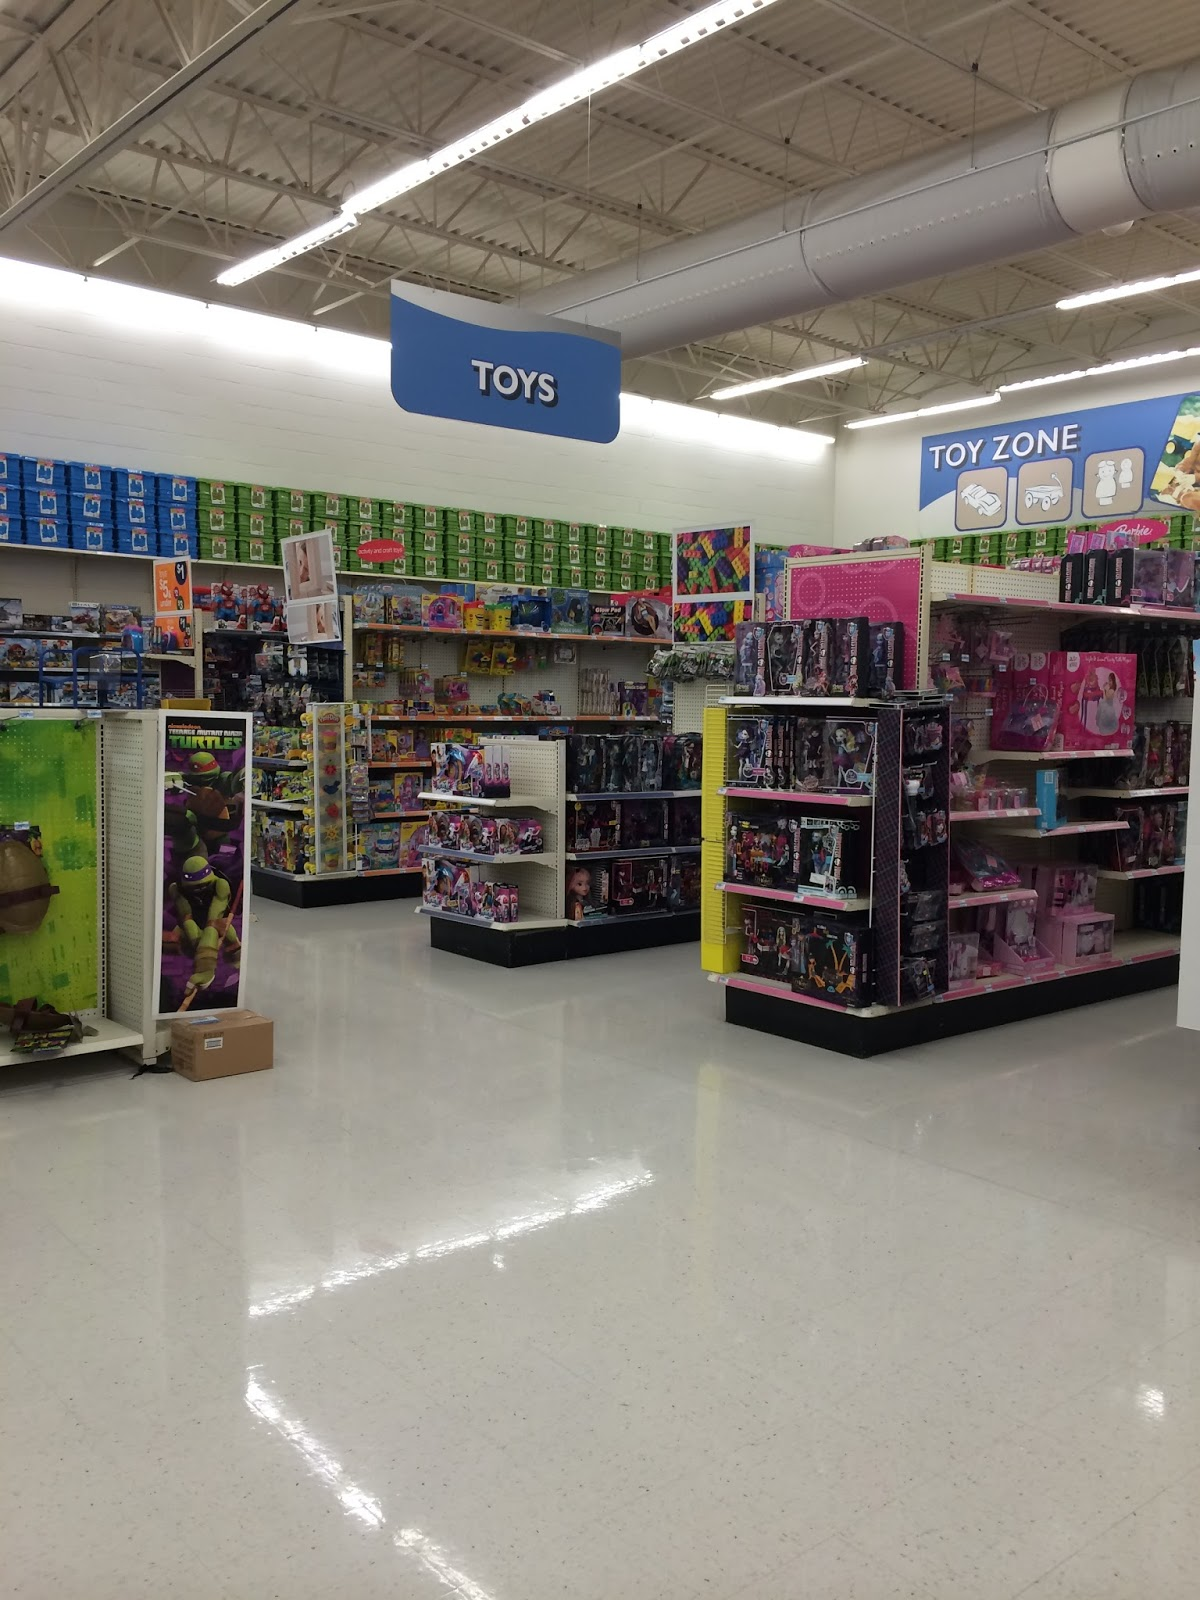 Kmart Toys For Boys : Dead and dying retail the last kmart ever built